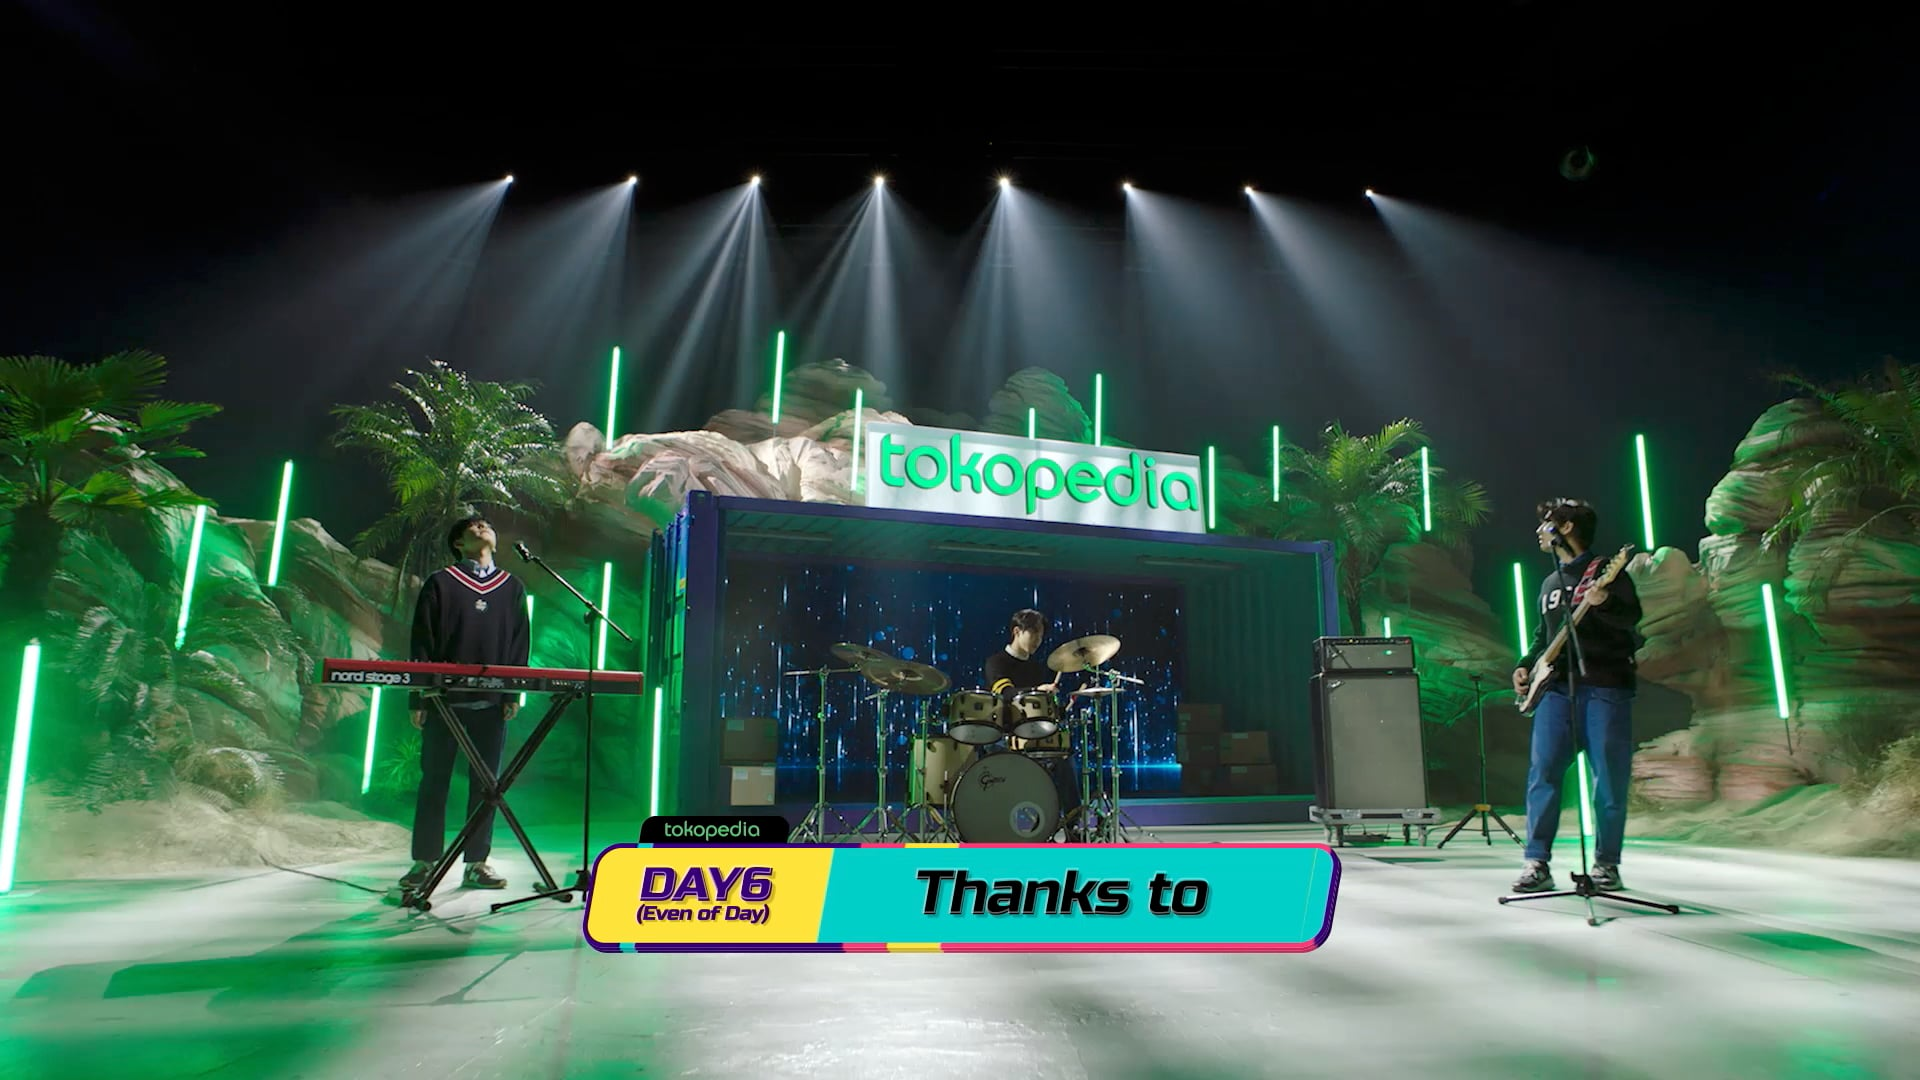 Tokopedia X DAY6(Even of Day): Thanks to